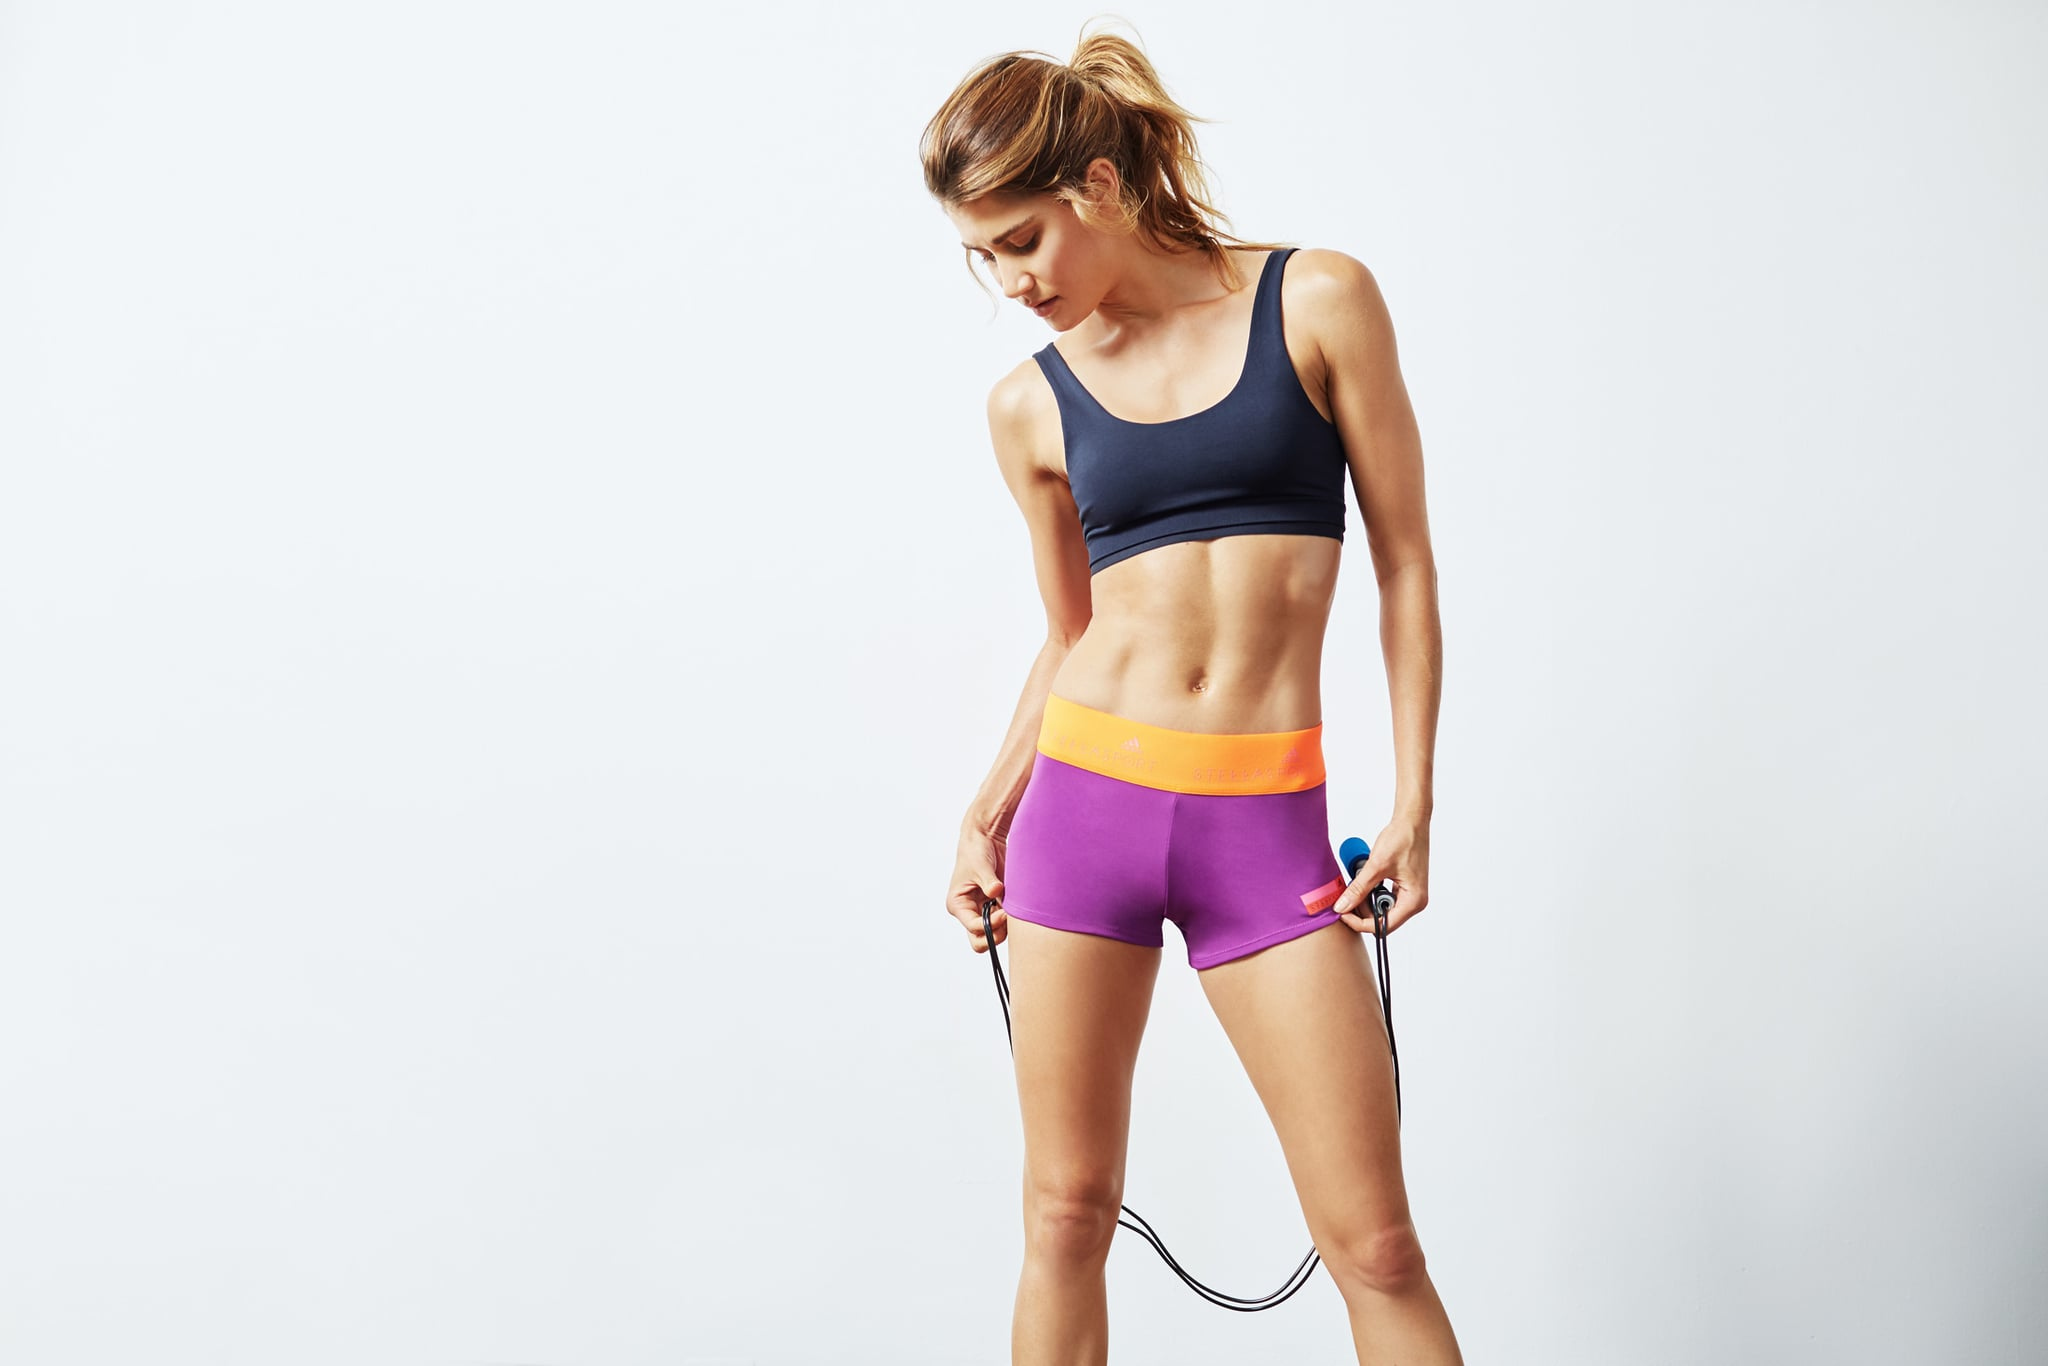 Get Insanely Ripped Abs With This 10-Minute CrossFit Workout